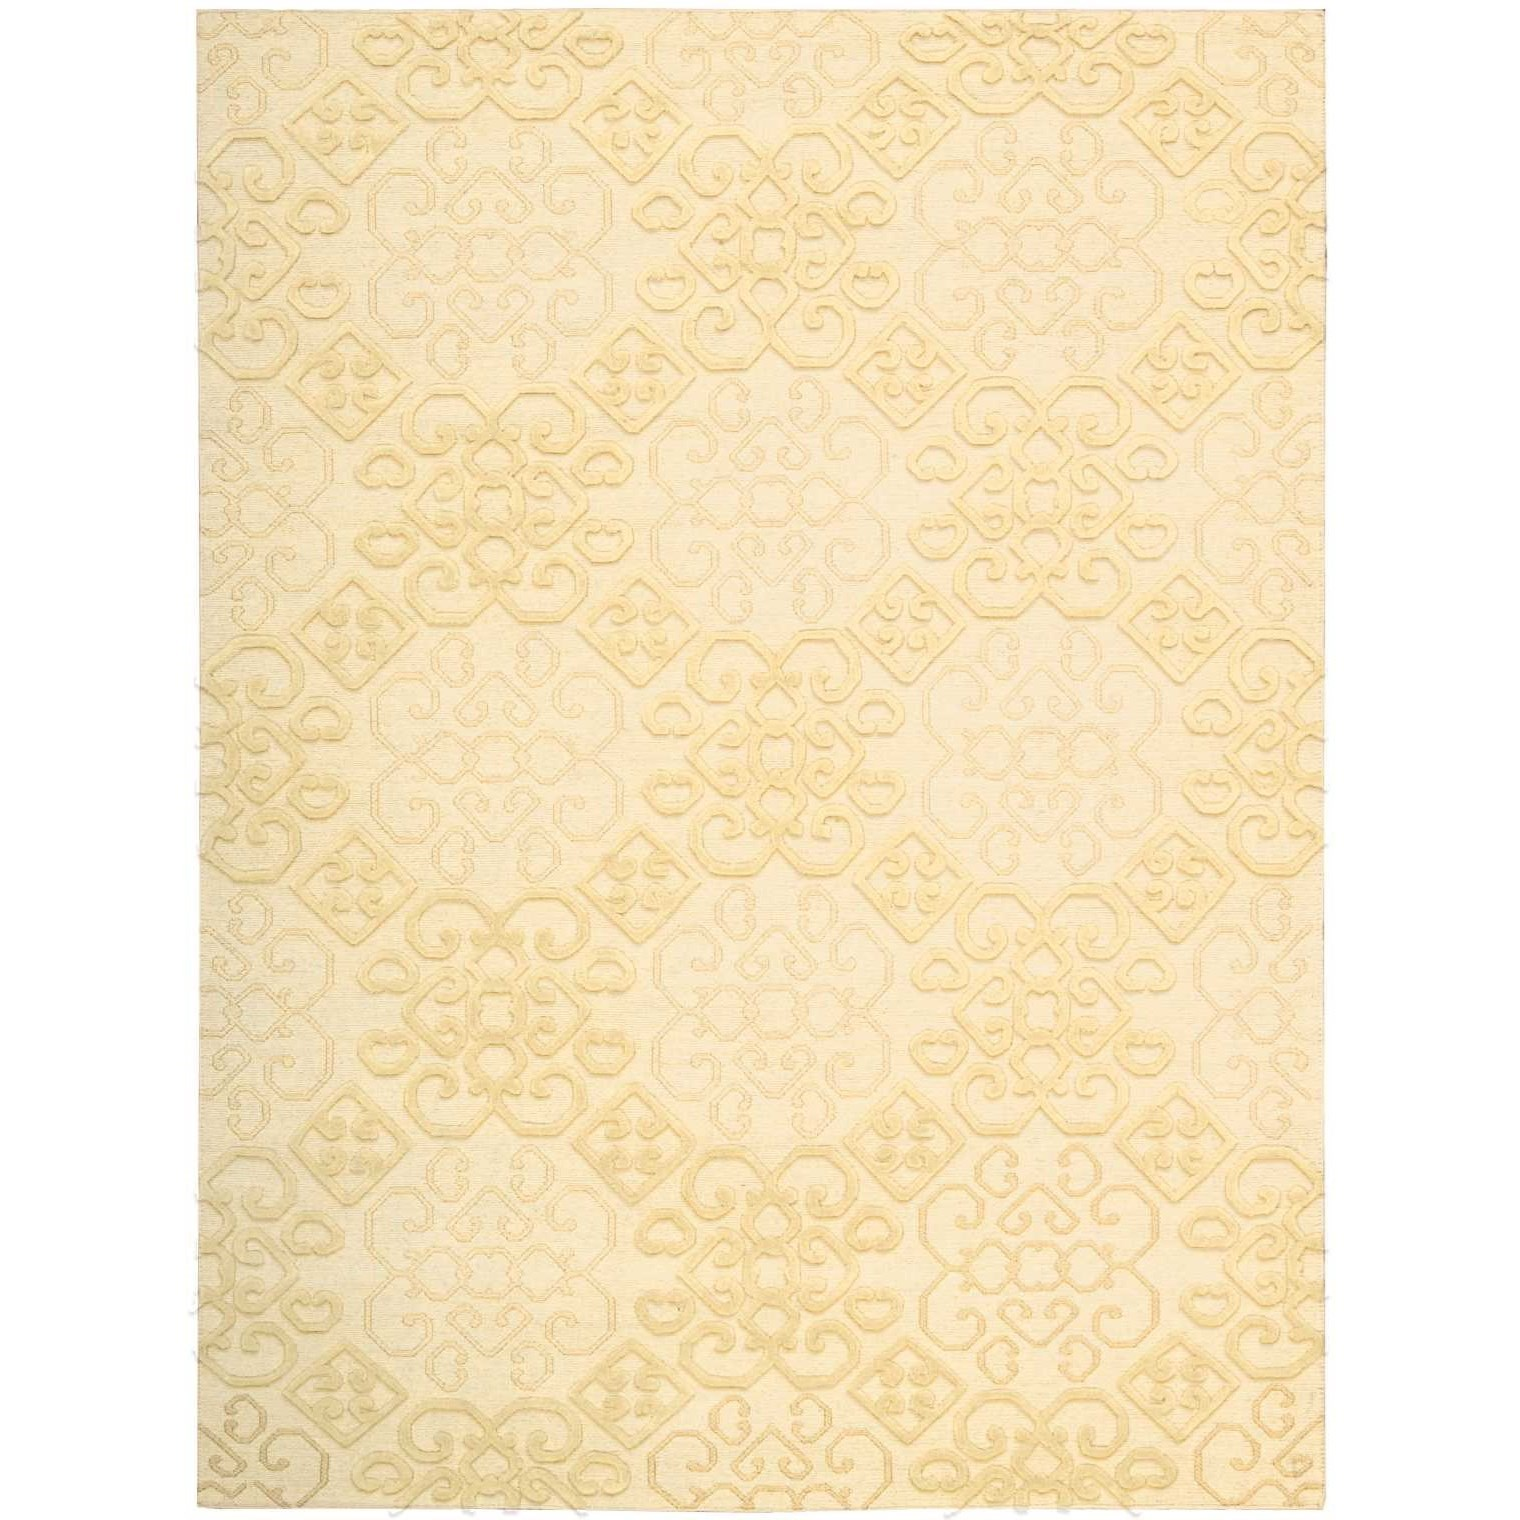 "Ambrose 8'6"" x 11'6"" Linen Rectangle Rug by Nourison at Sprintz Furniture"